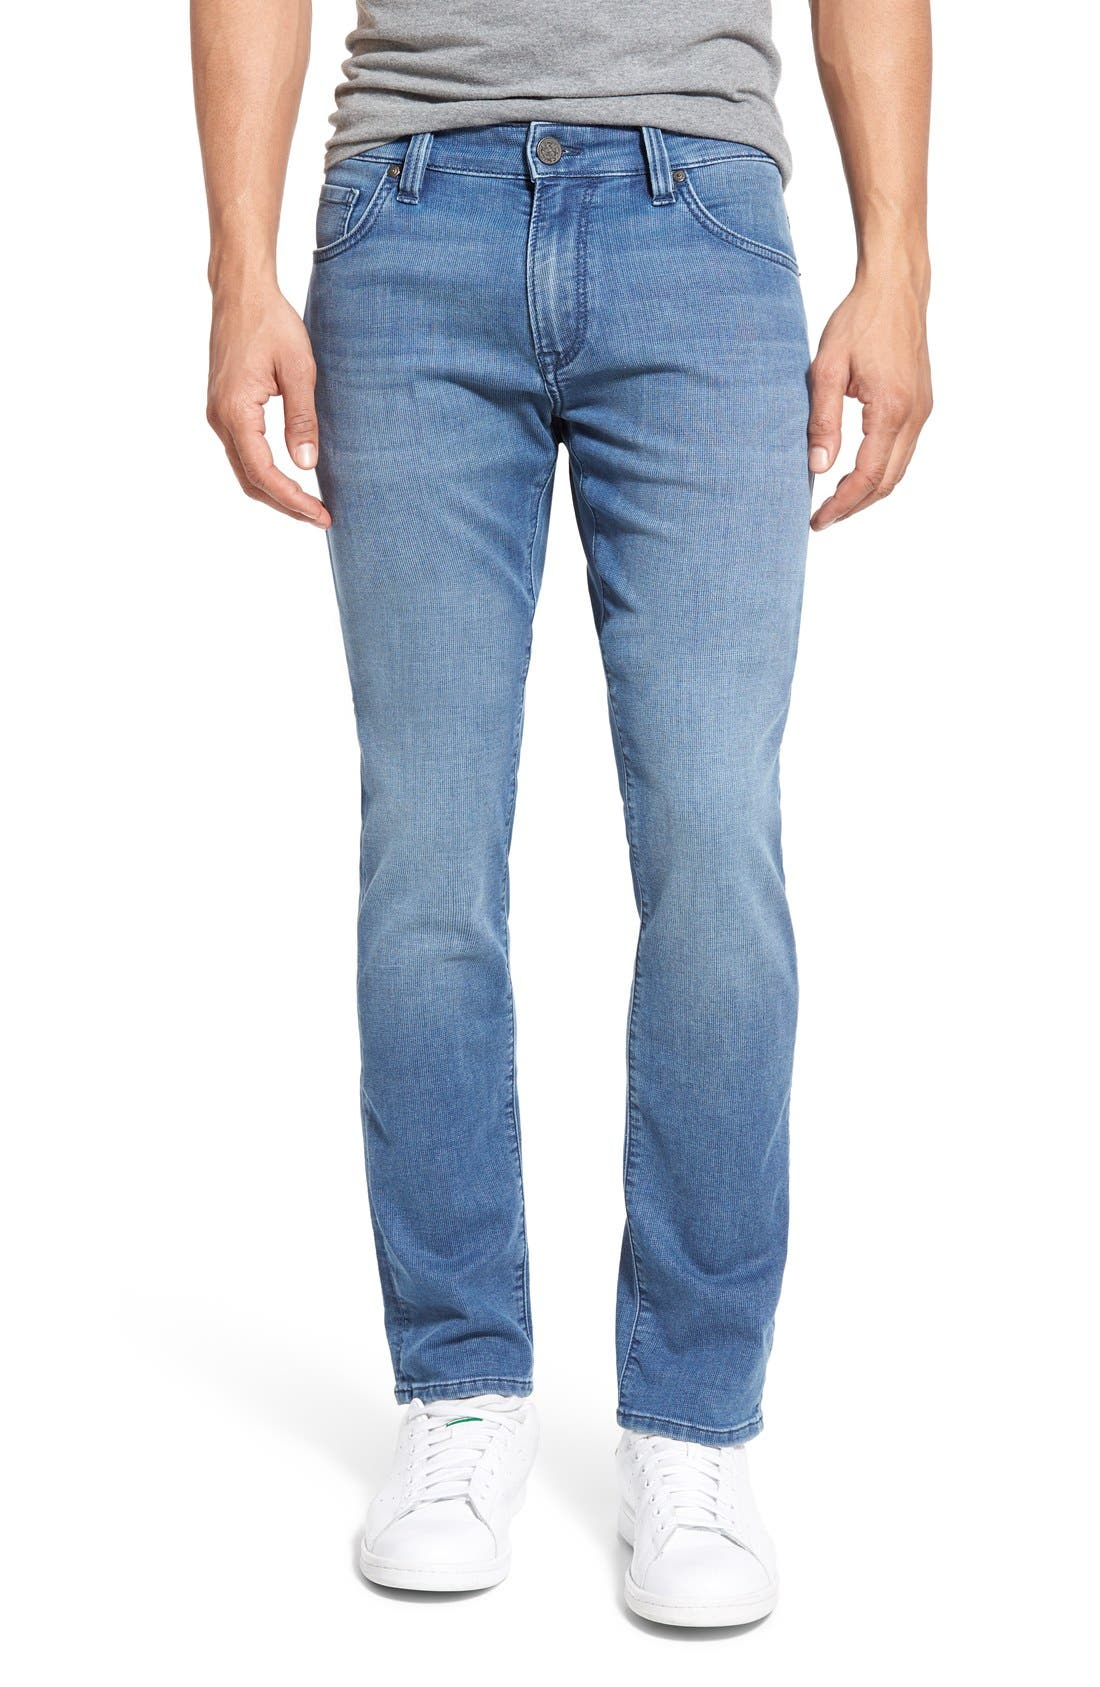 'Courage' Straight Leg Jeans,                             Main thumbnail 1, color,                             Light Indigo Sporty